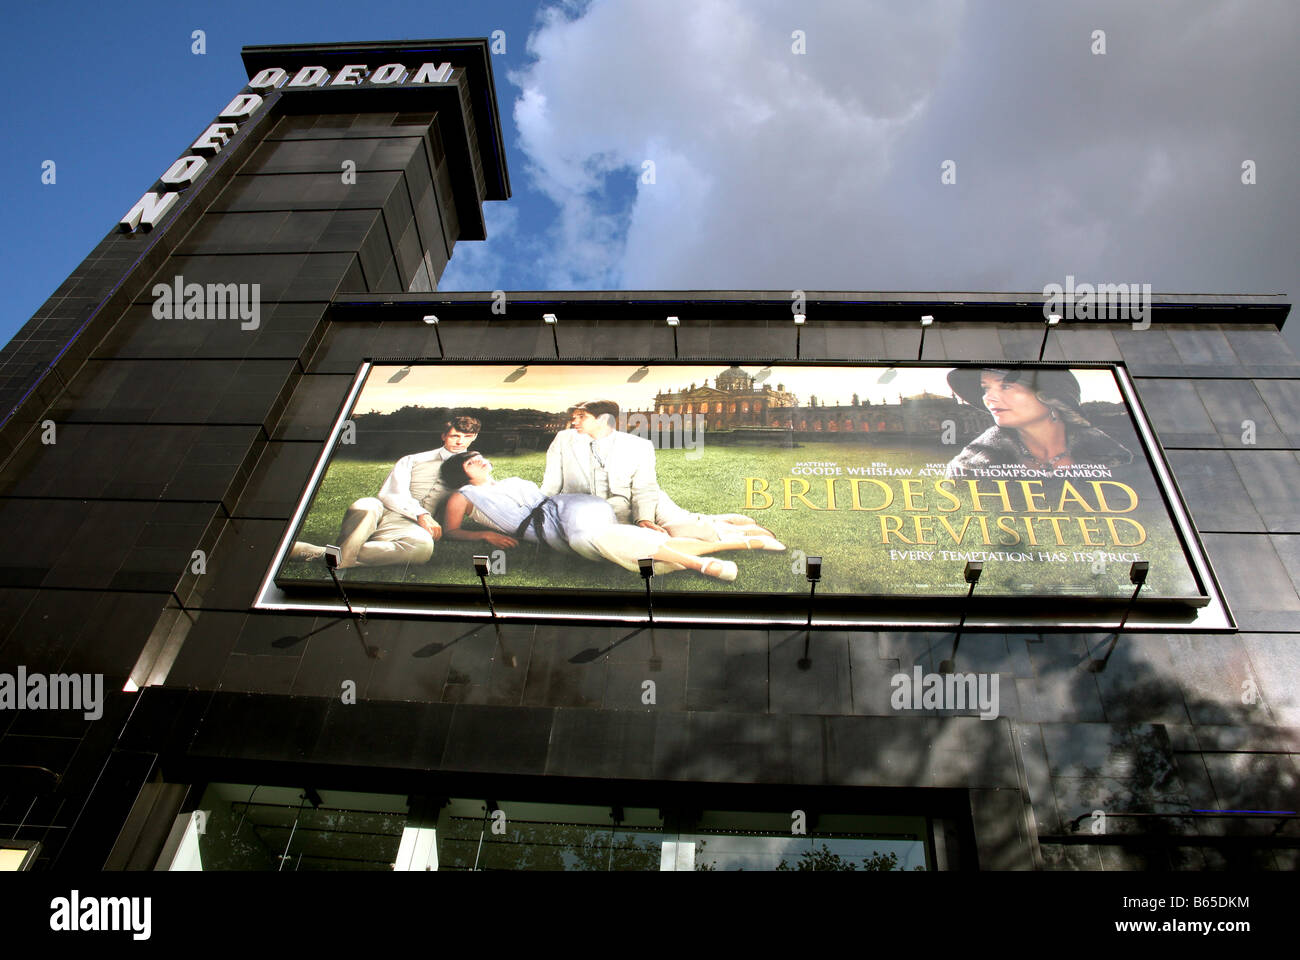 Brideshead Revisited showing at Odeon, Leicester Square, London - Stock Image